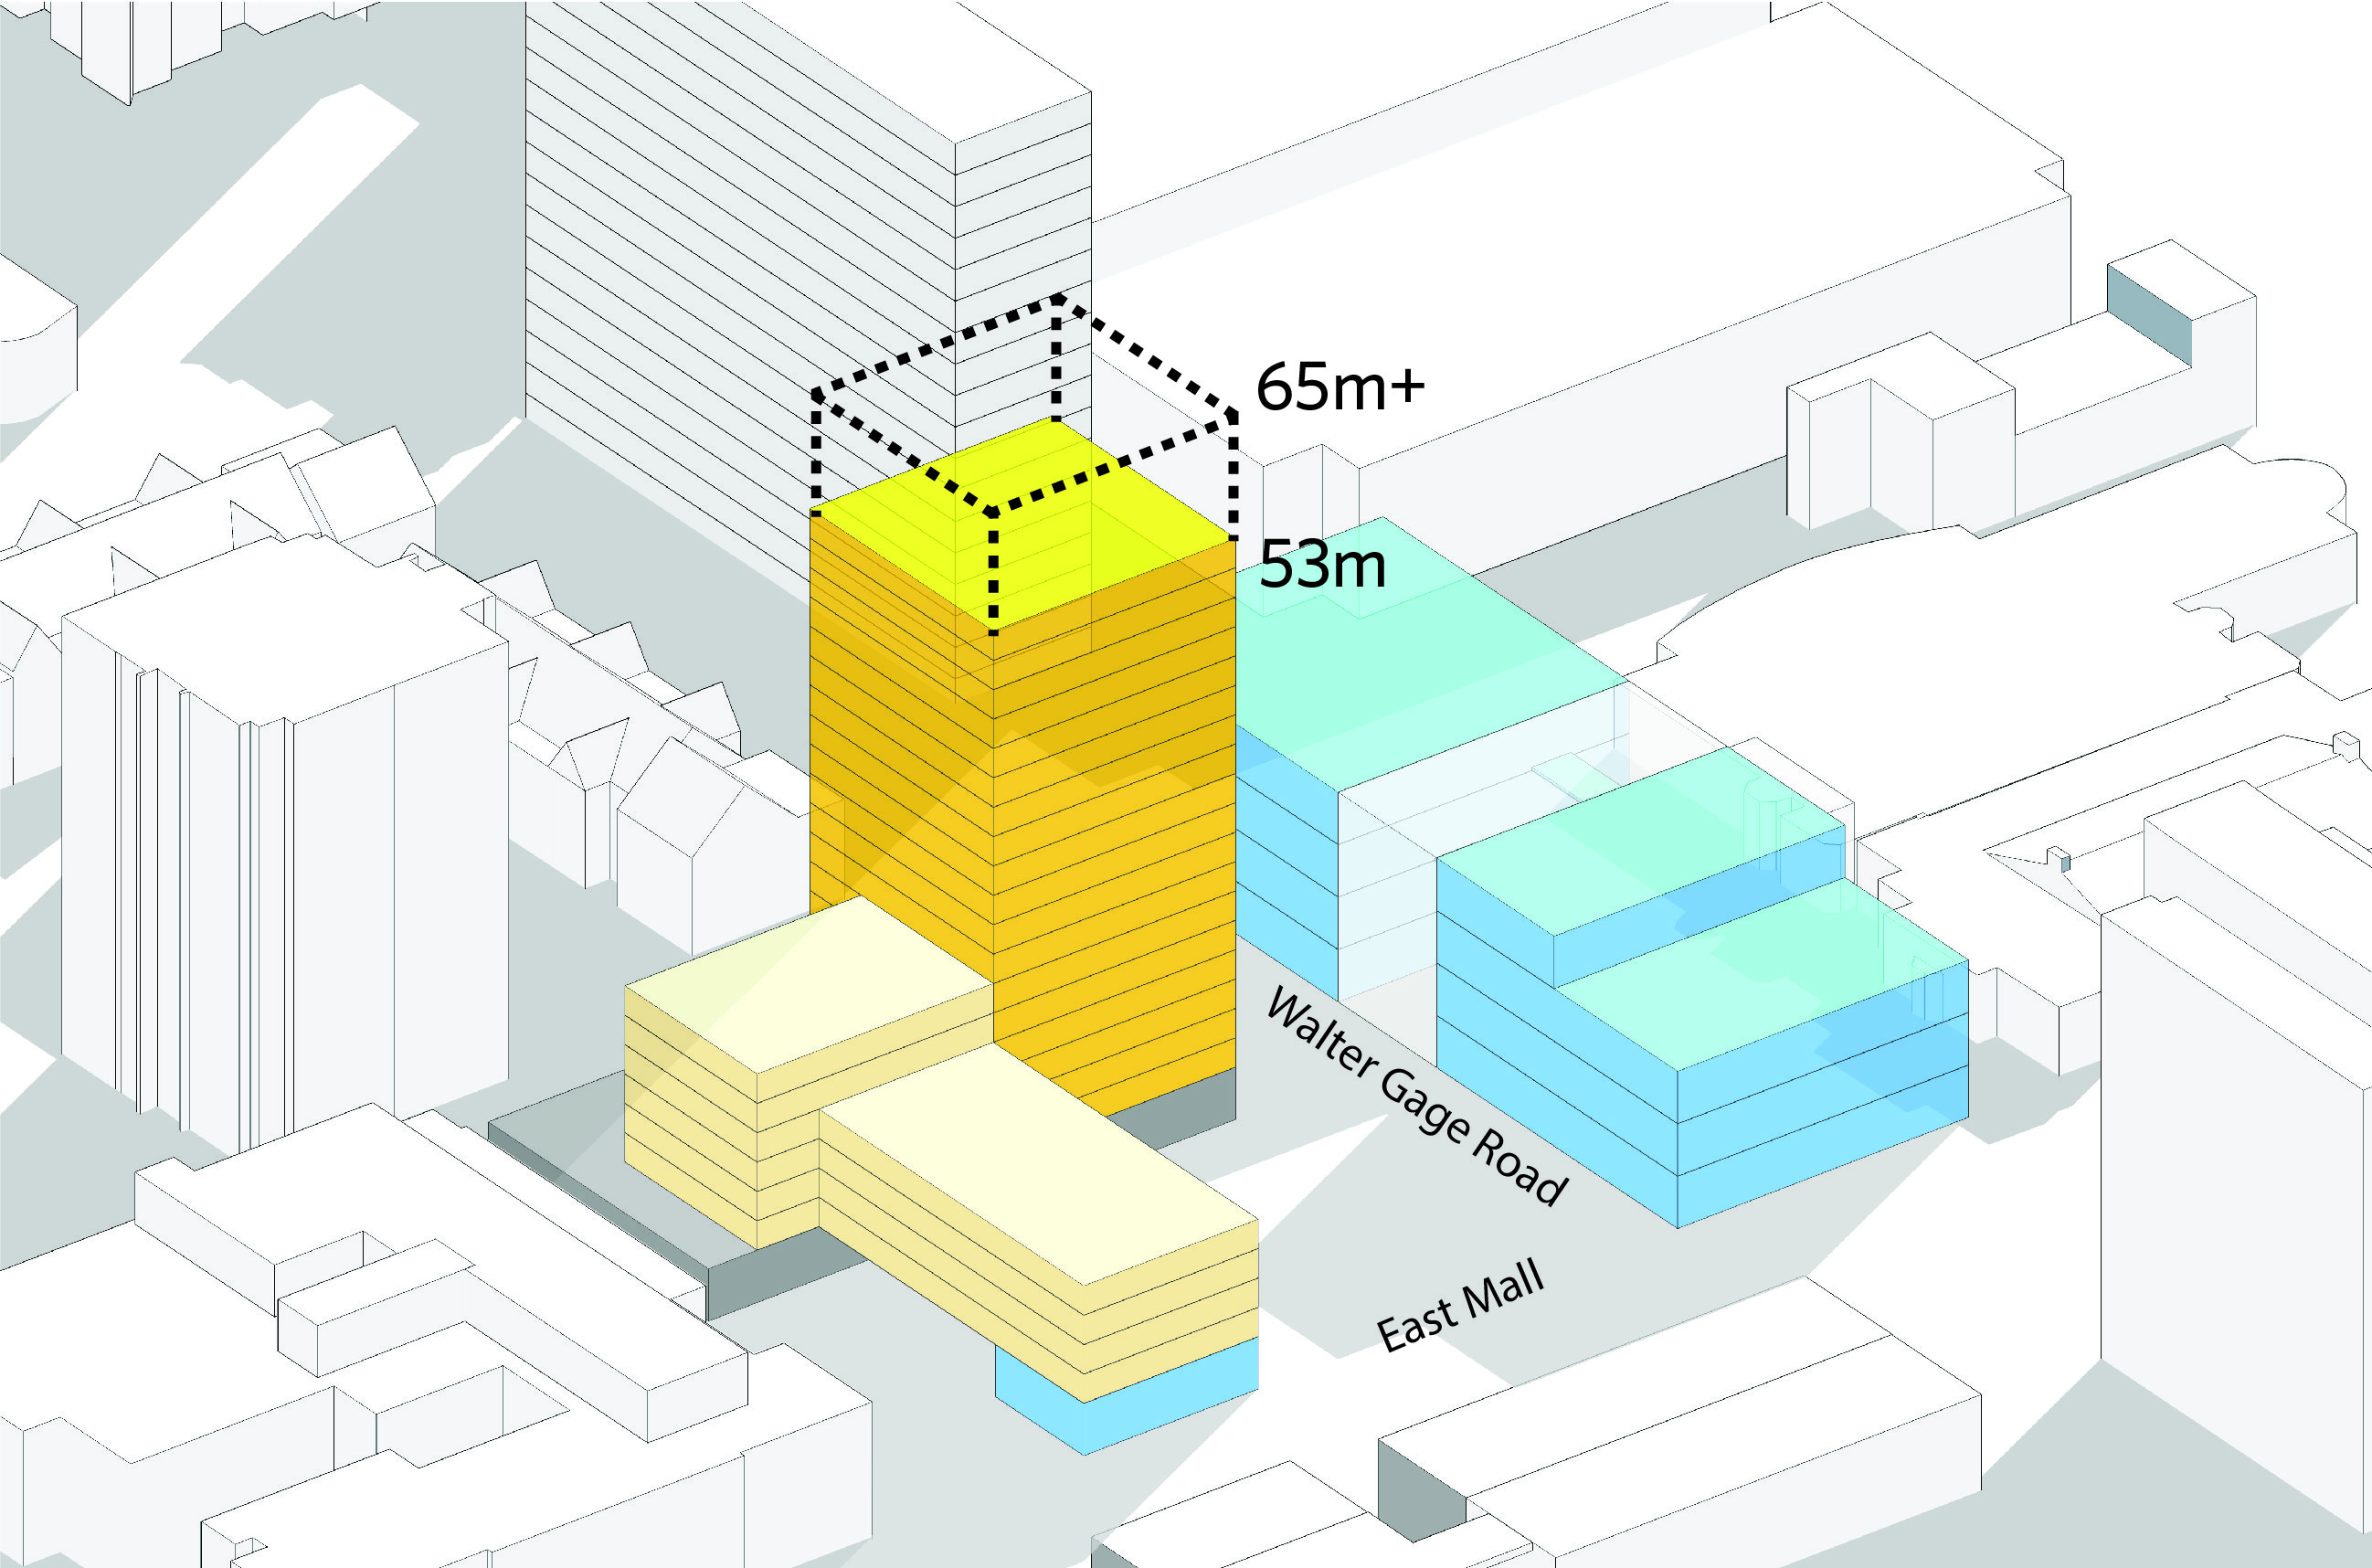 UBC will be asking the province to consider increasing the height limit on academic buildings on campus through the Land Use Plan from its current limit of 53 metres or 18 stories to 65 metres or 22 stories.